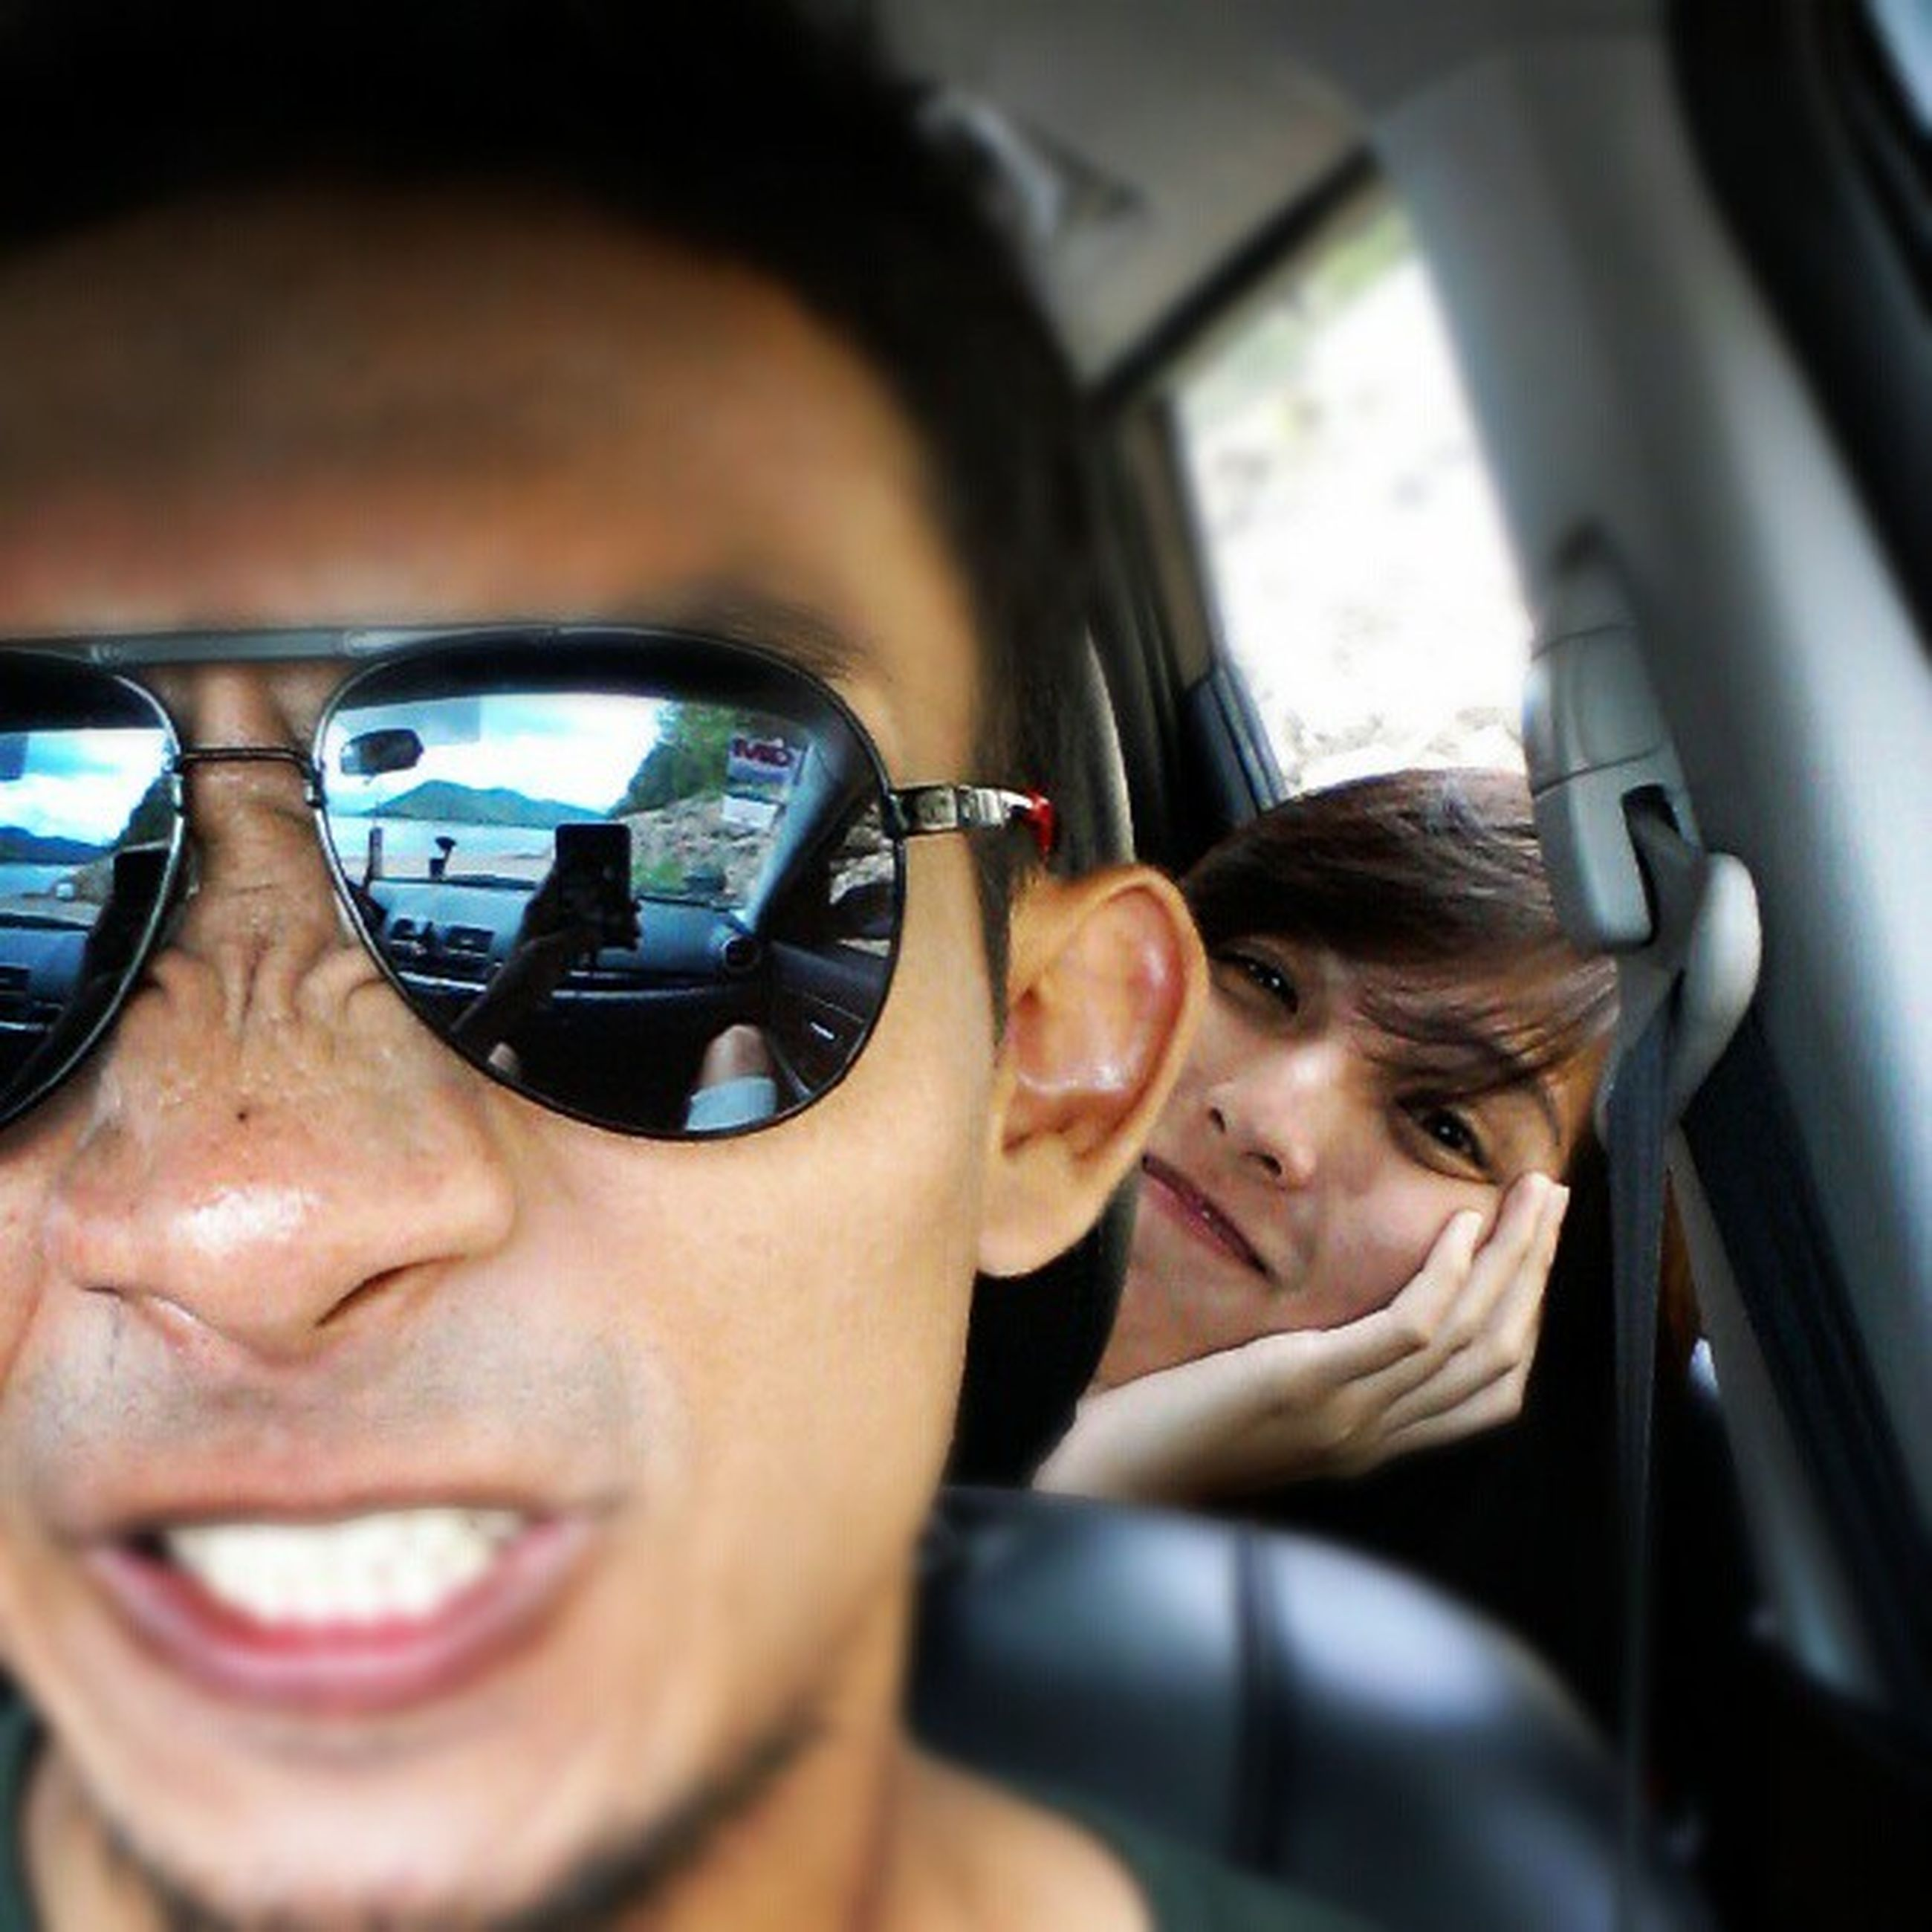 person, lifestyles, headshot, leisure activity, young adult, transportation, vehicle interior, looking at camera, mode of transport, portrait, young men, smiling, car, land vehicle, head and shoulders, sunglasses, front view, mid adult